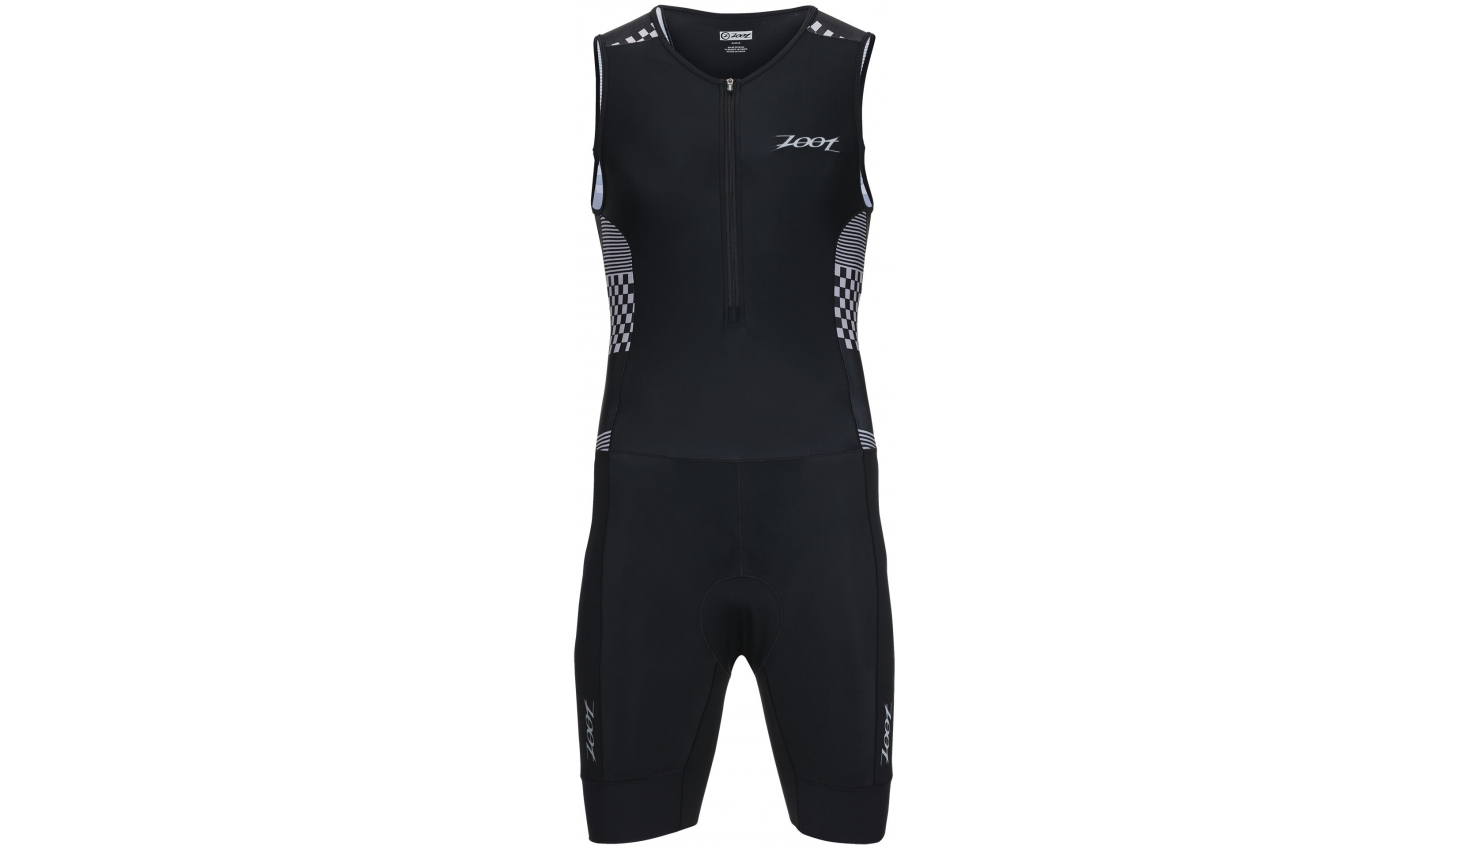 ZOOT PERFORMANCE TRI RACESUIT Silver checkers